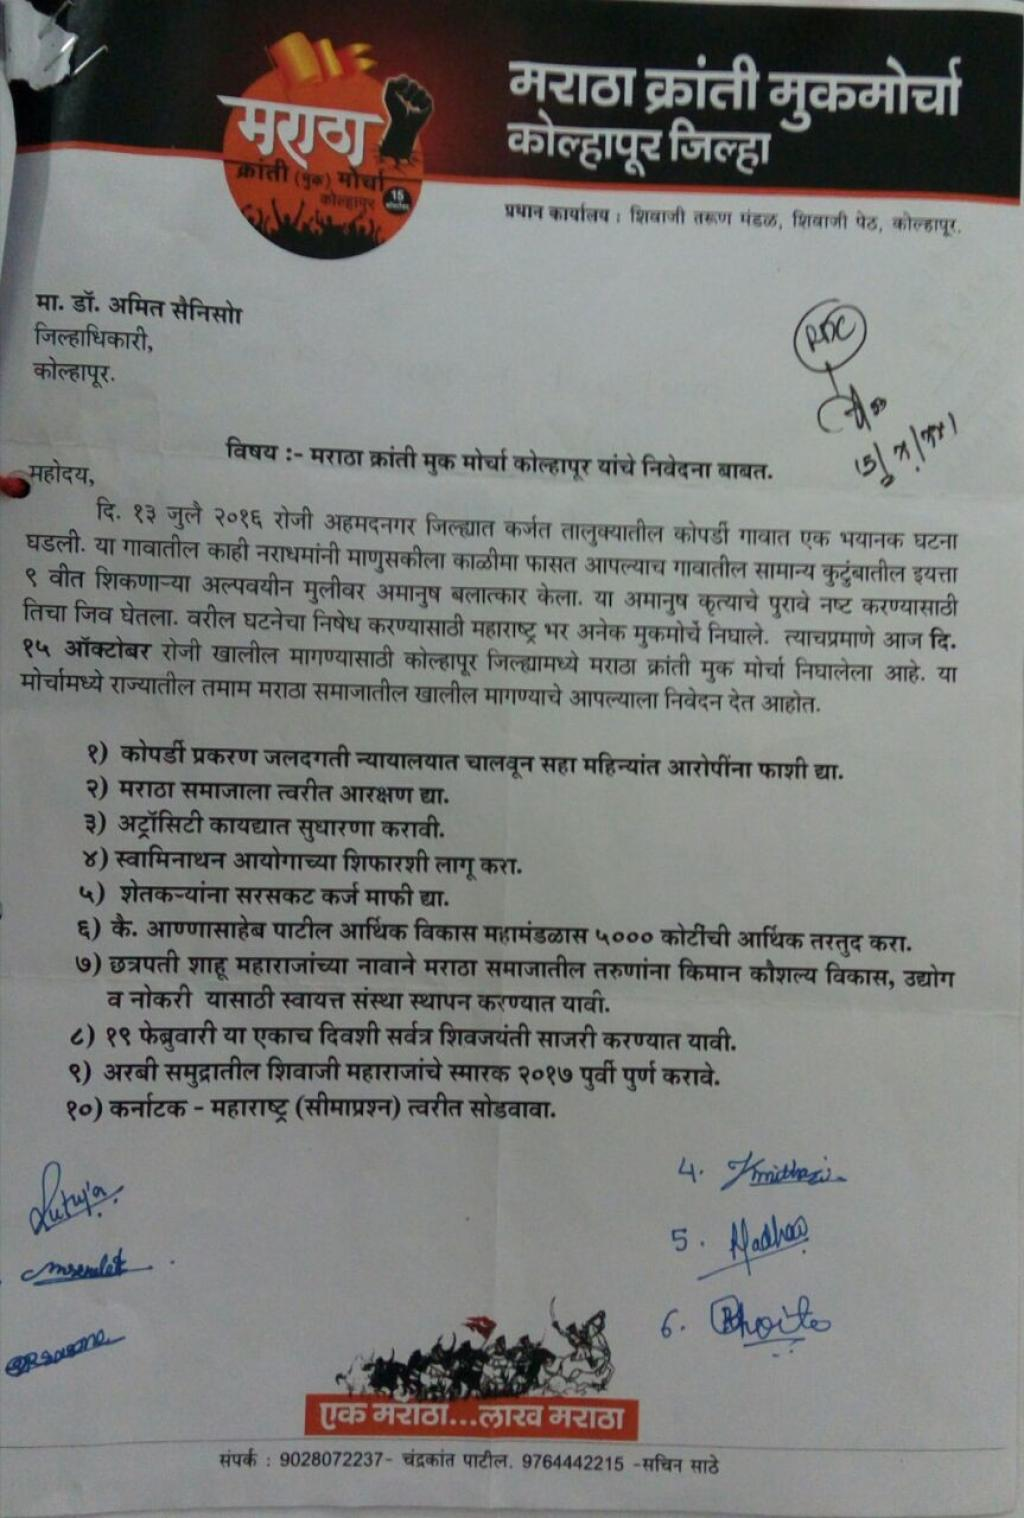 A copy of the the list of demands submitted by the Maratha protesters to the Kolhapur district collector.